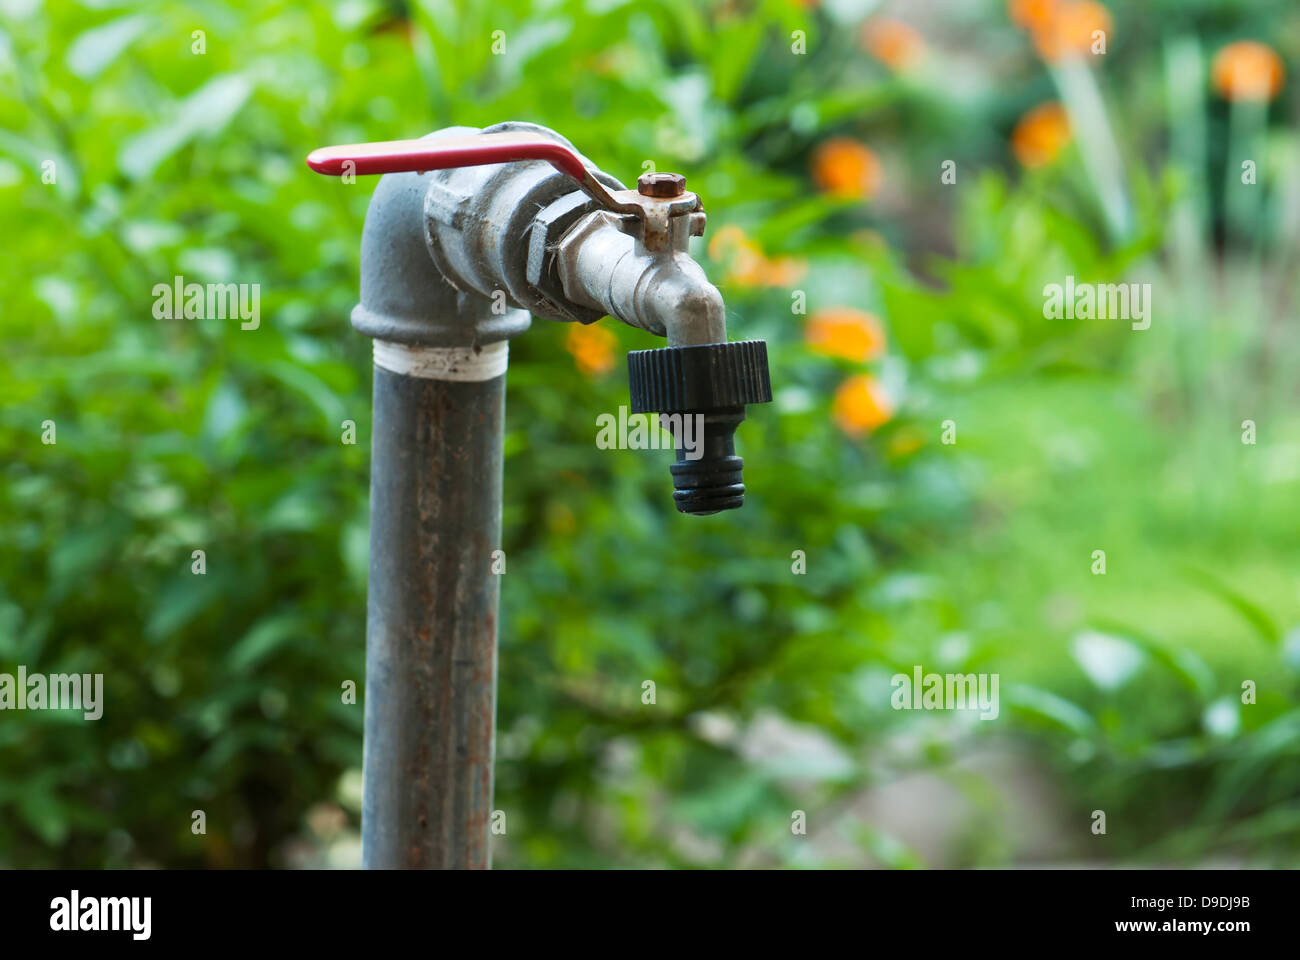 Wonderful Detail Of Old Garden Faucet.   Stock Image